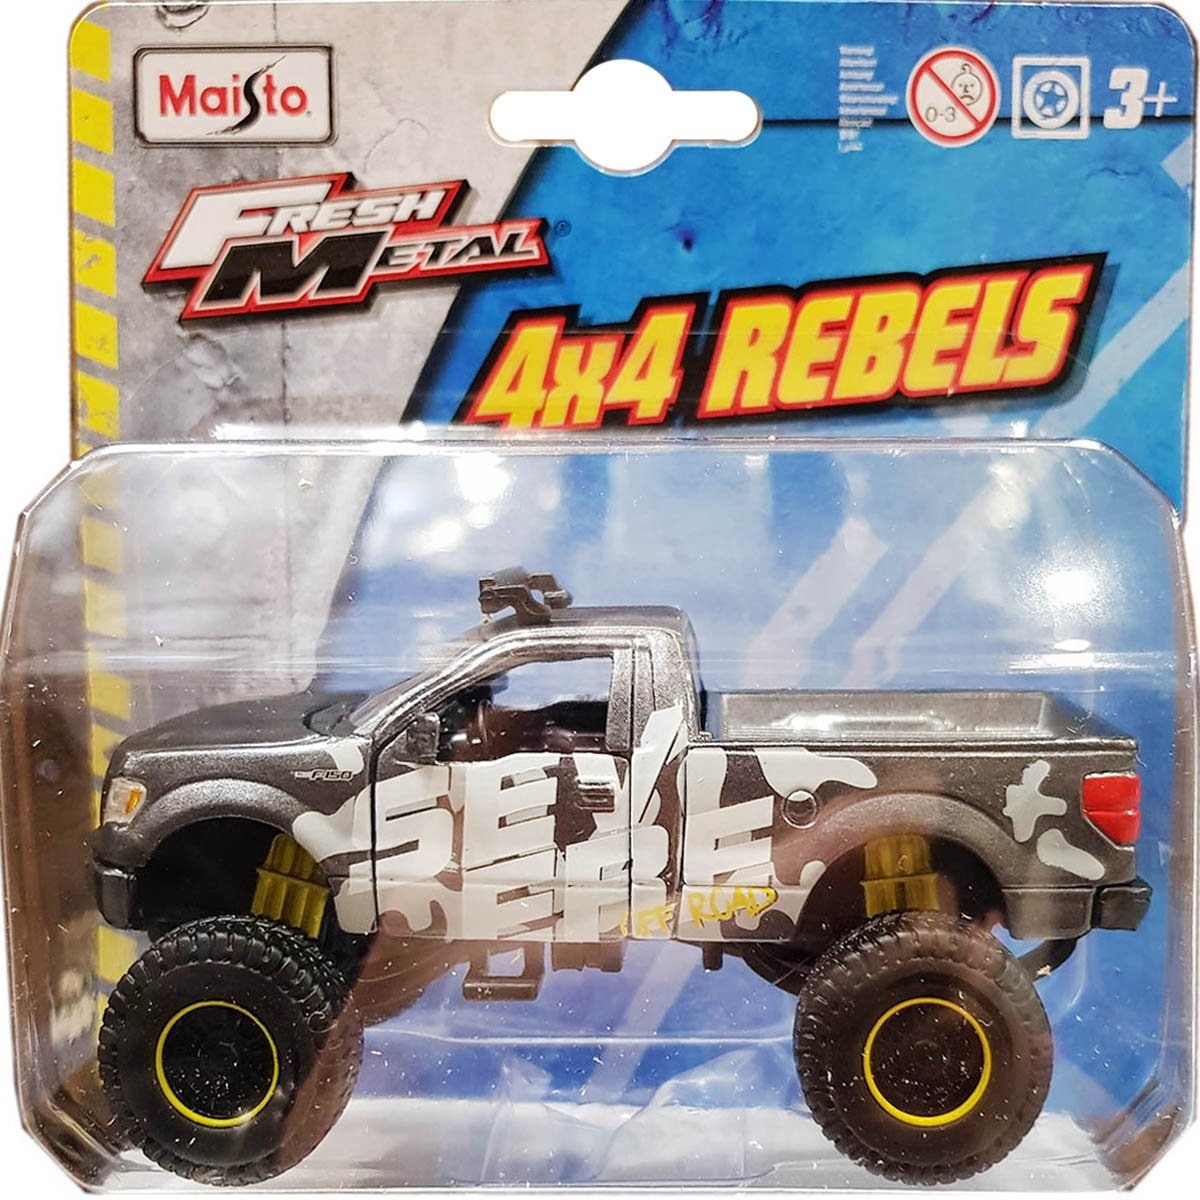 Masinuta Maisto Fresh Metal, 4X4 Rebels, 11 cm, 1:64, Gri